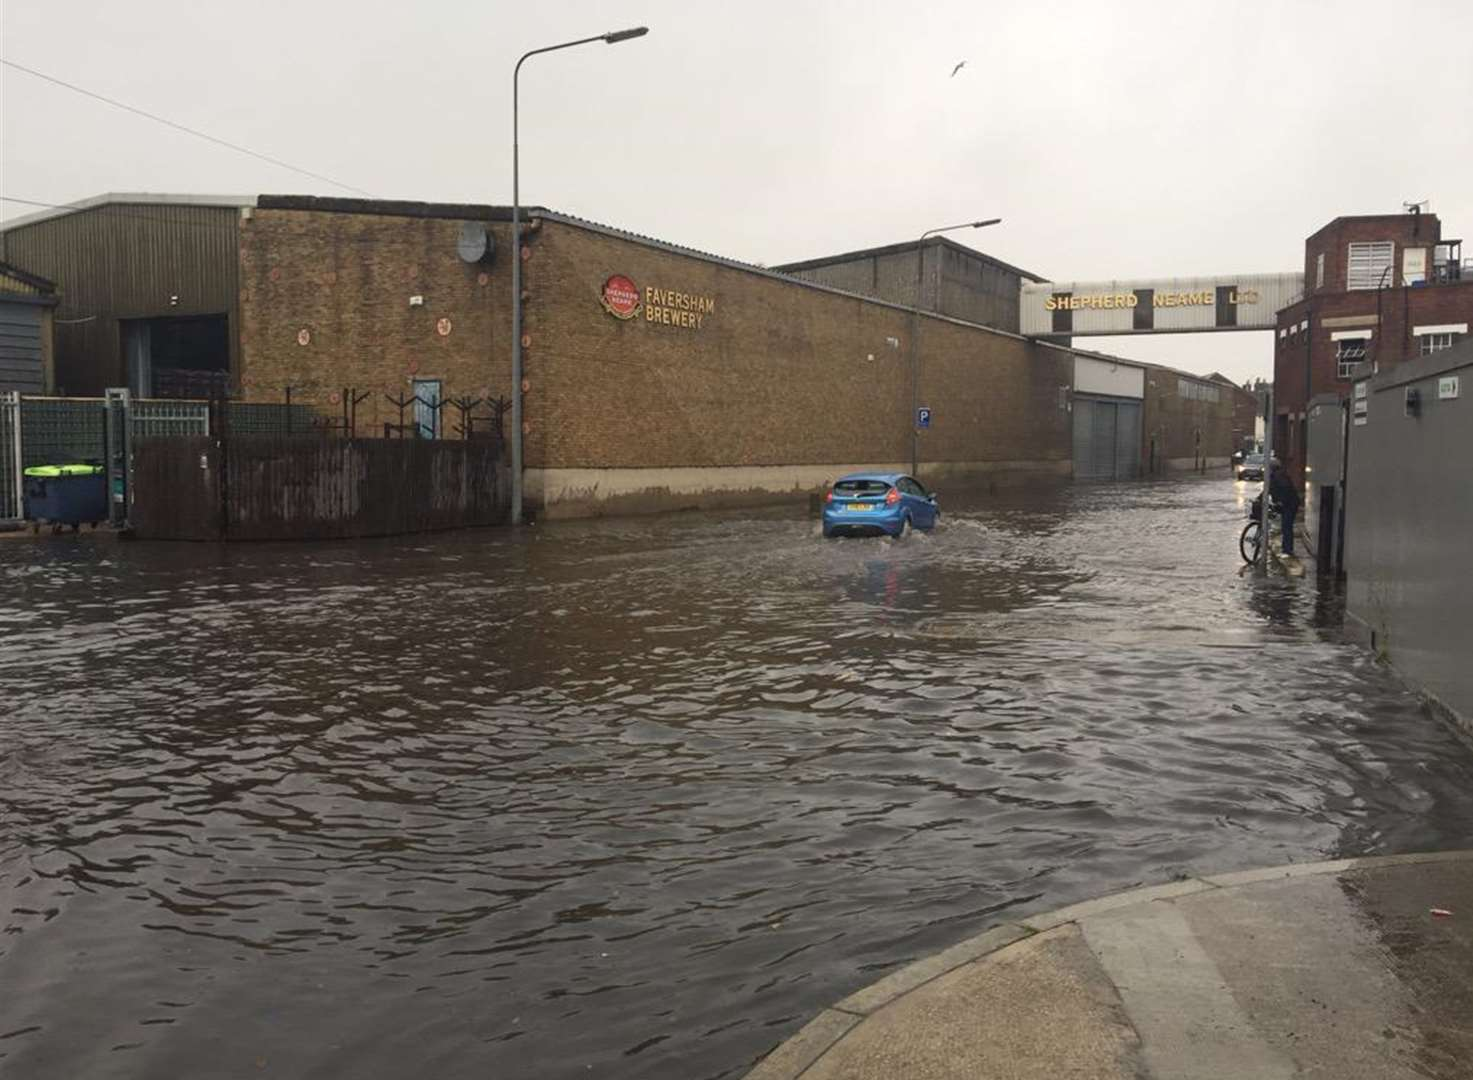 Power cuts and flooding as storm hits